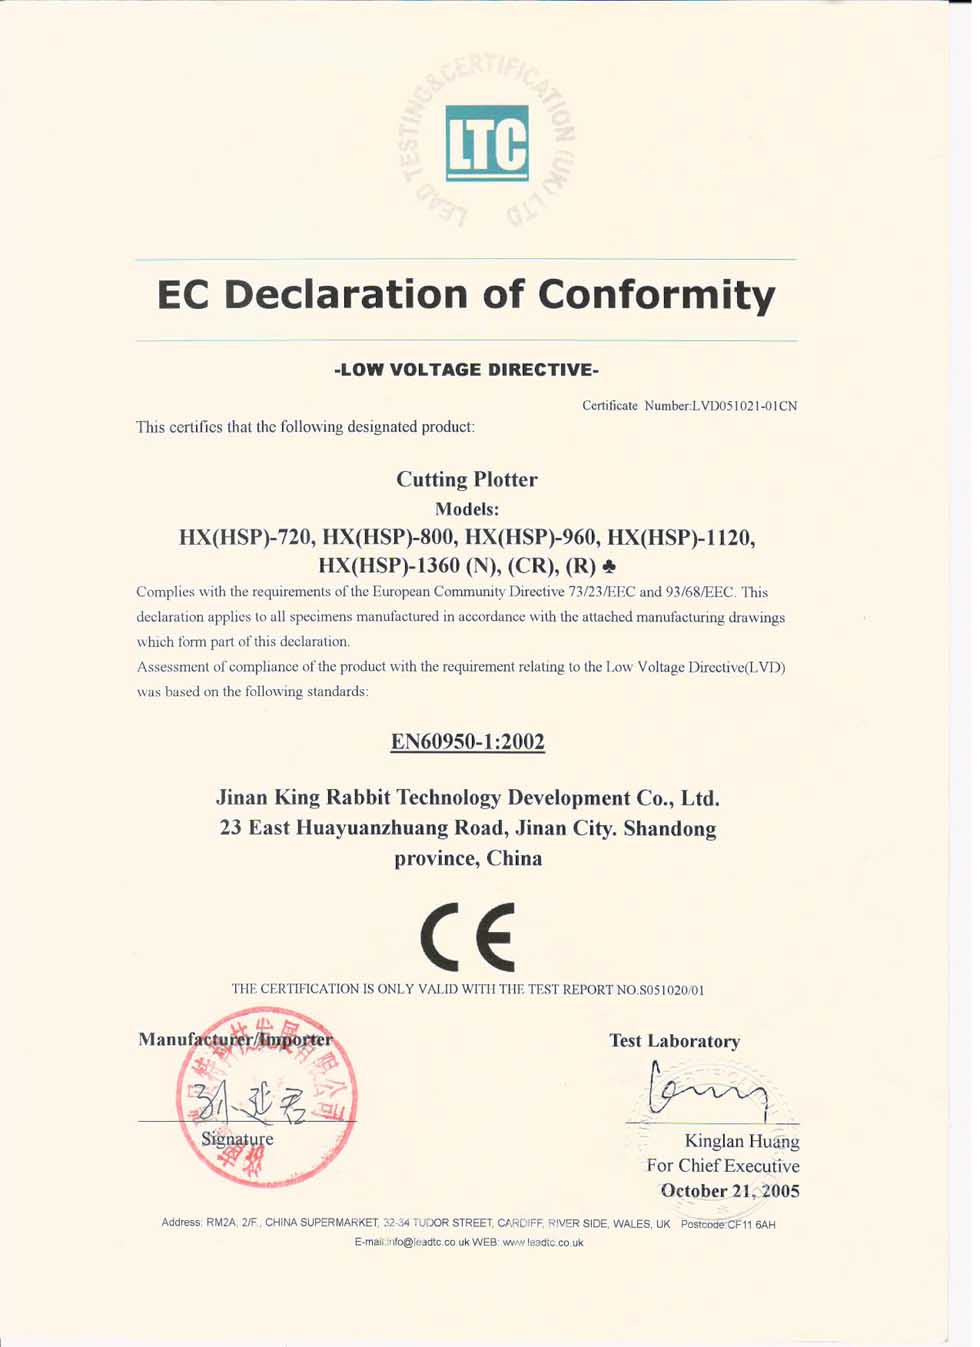 CE Certificate of cutting plotter